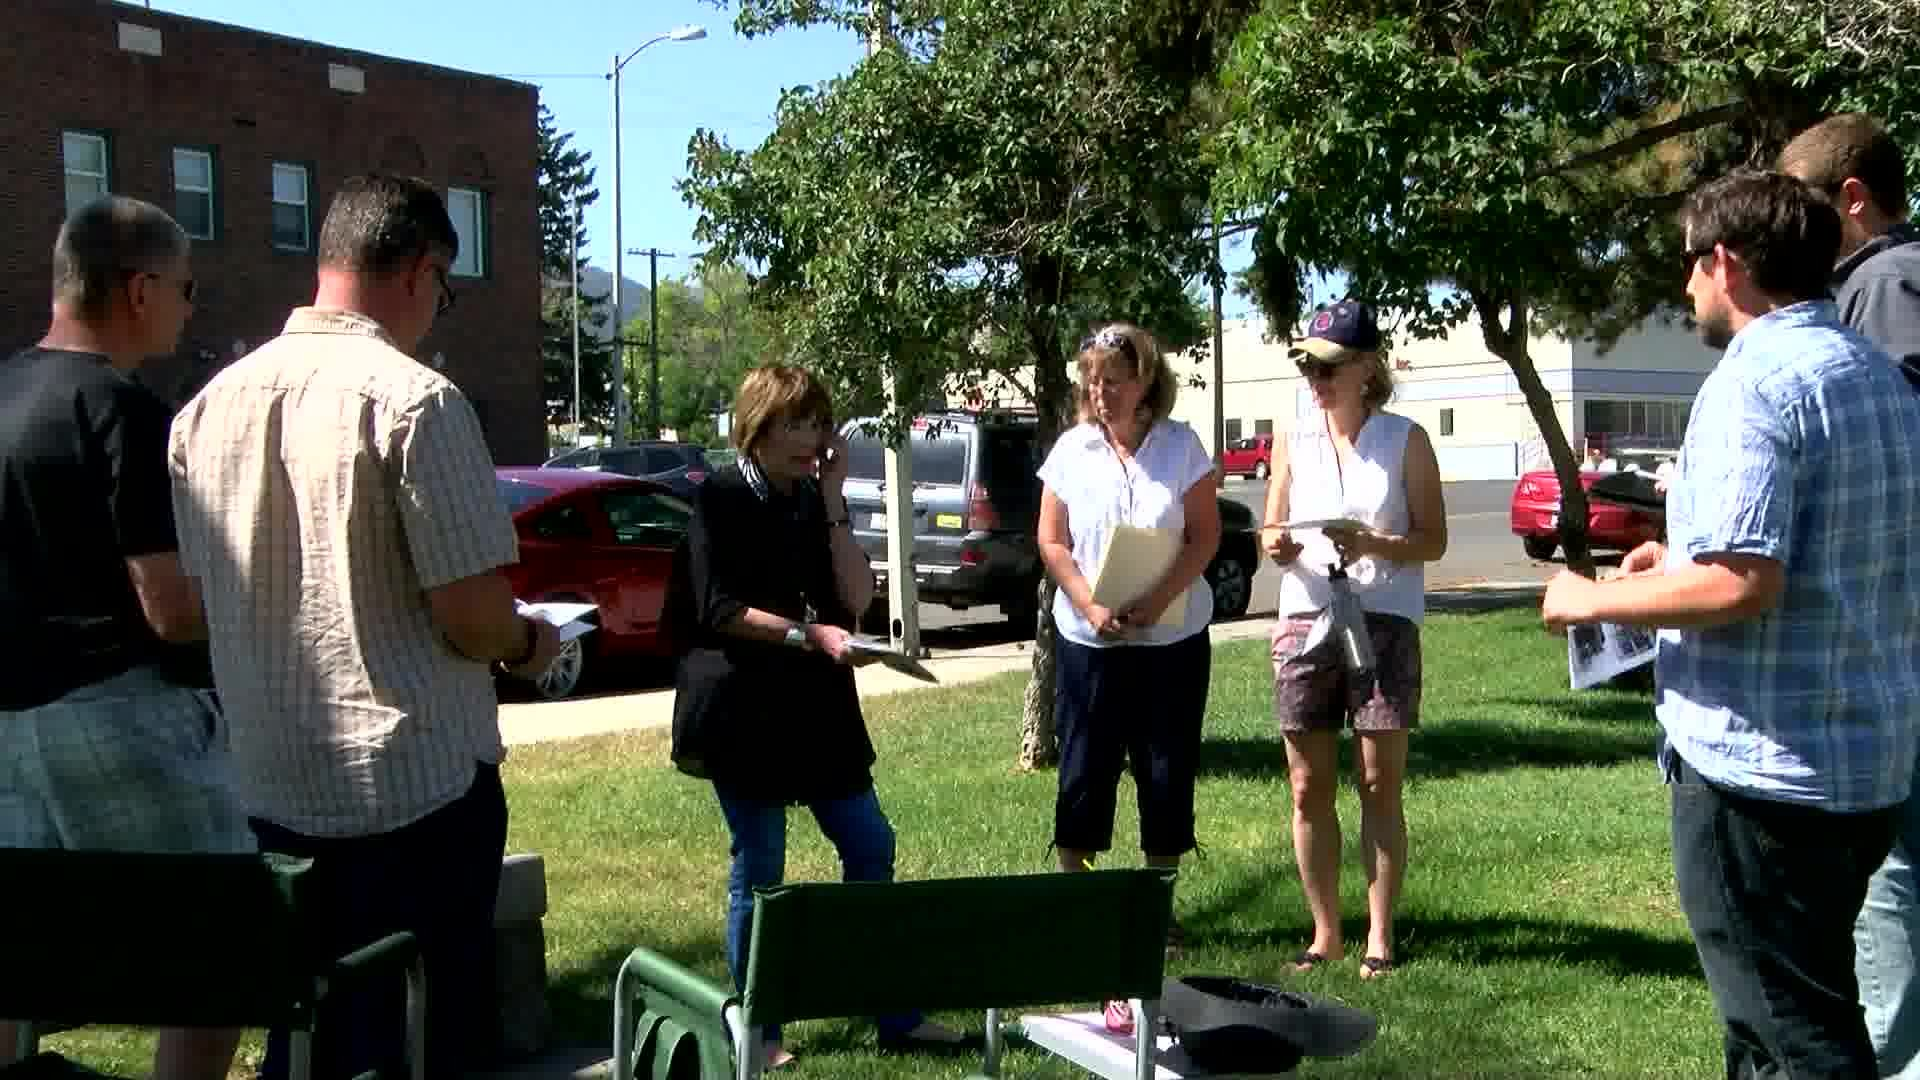 Sixth Ward Neighborhood Association hosts tour